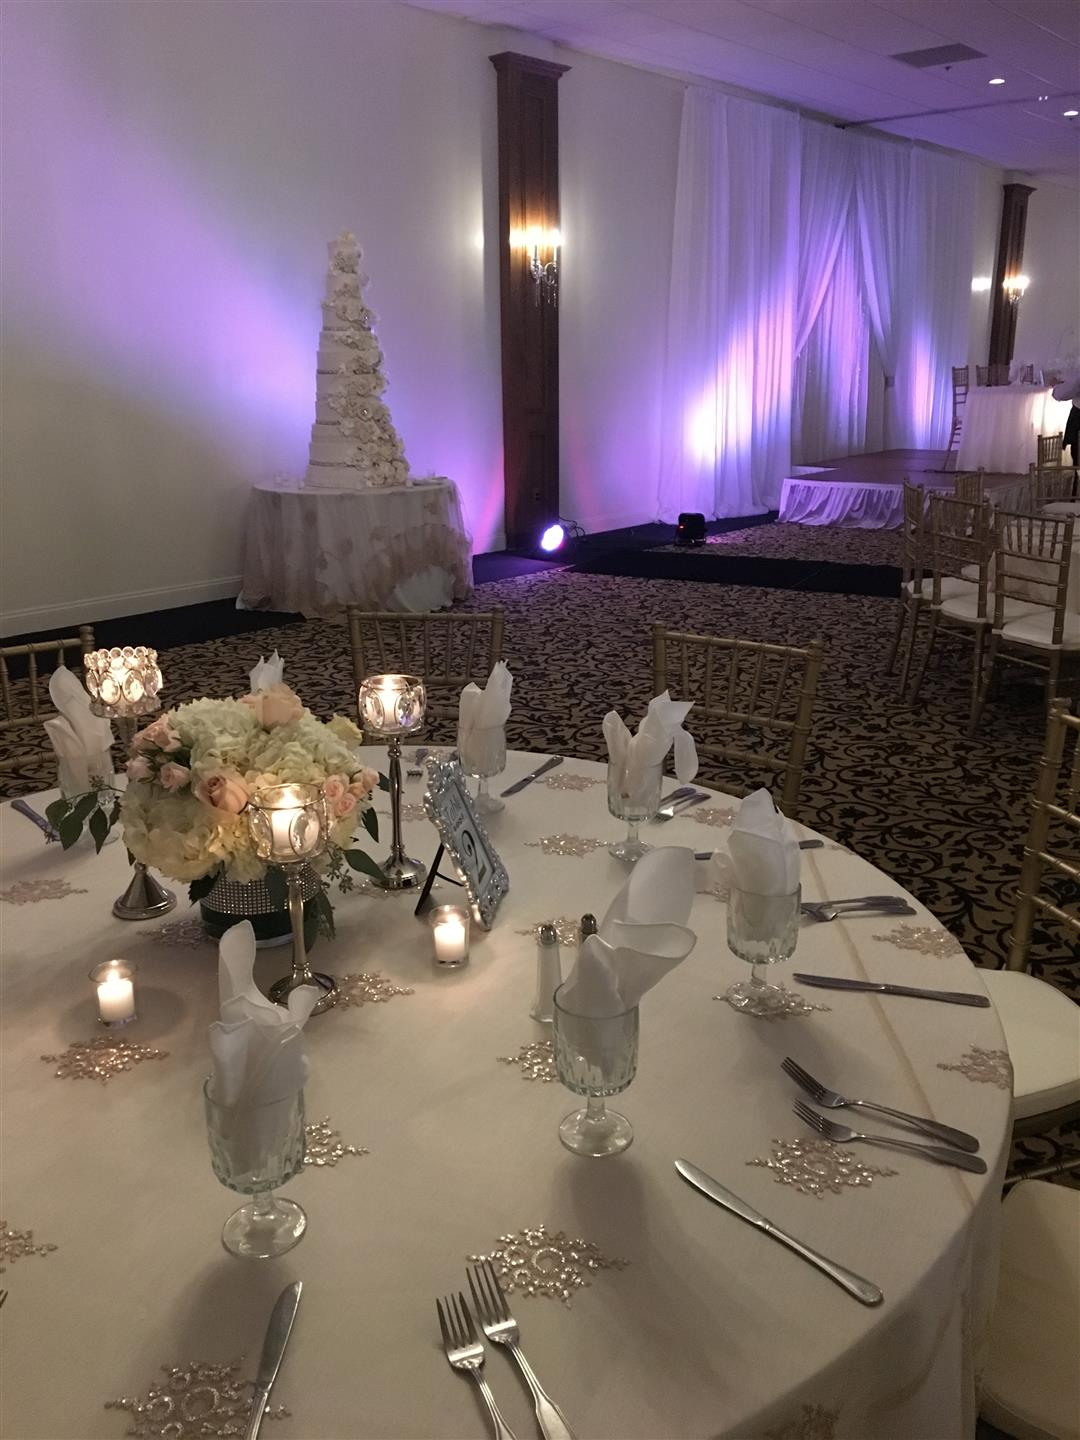 Wedding tables set up with glass wear and dish wear with wedding cake in the background